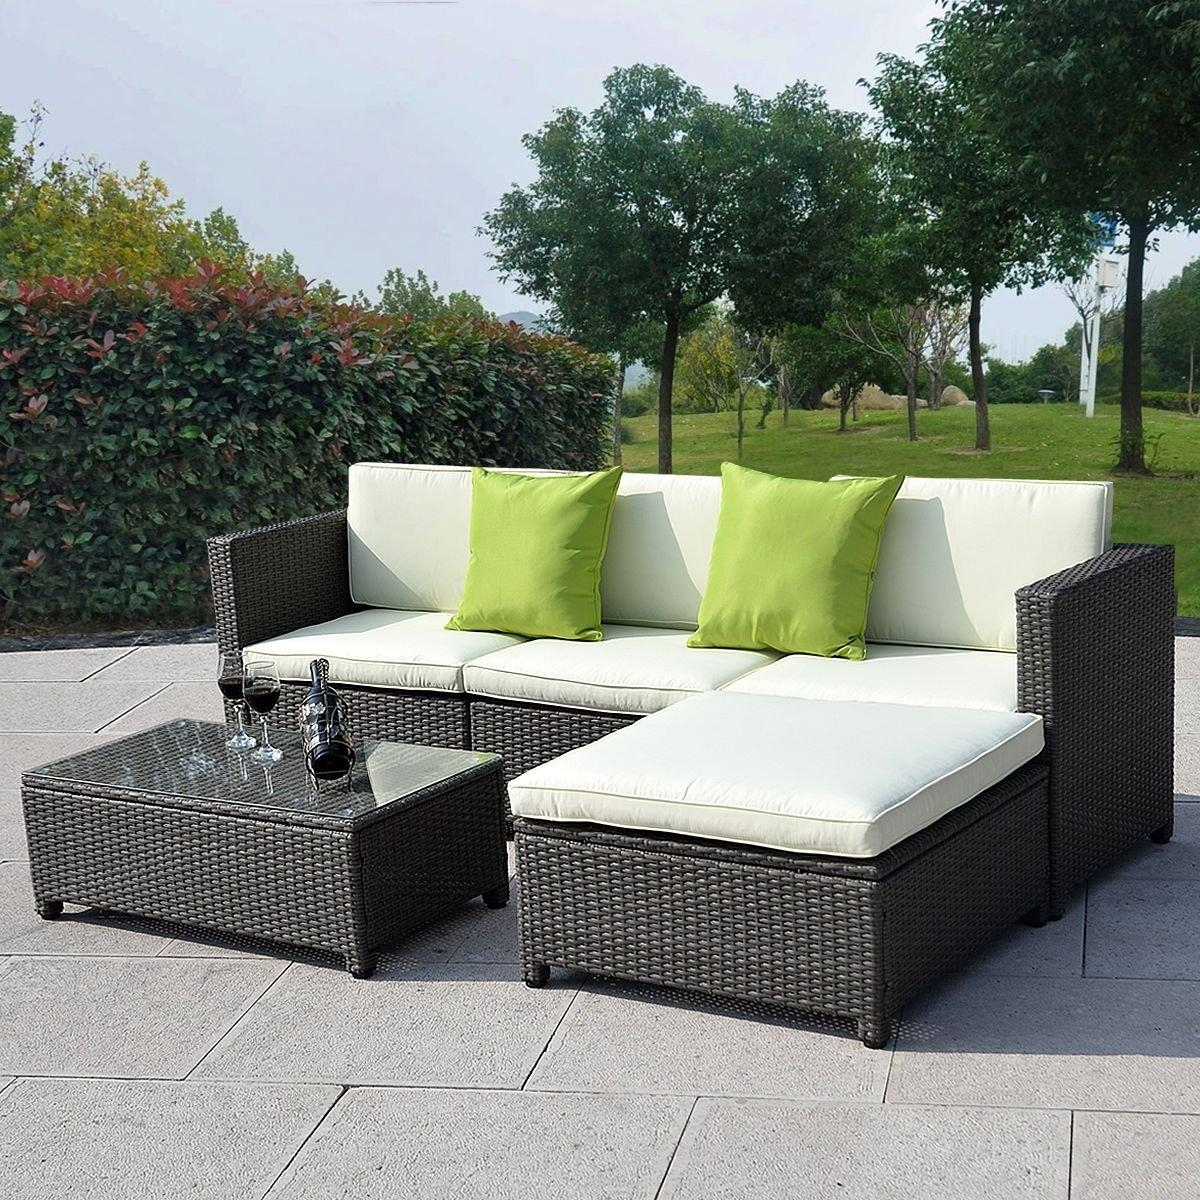 Patio: Astounding Cheap Outdoor Sofa Patio Furniture Home Depot Within Cheap Outdoor Sectionals (Image 11 of 15)